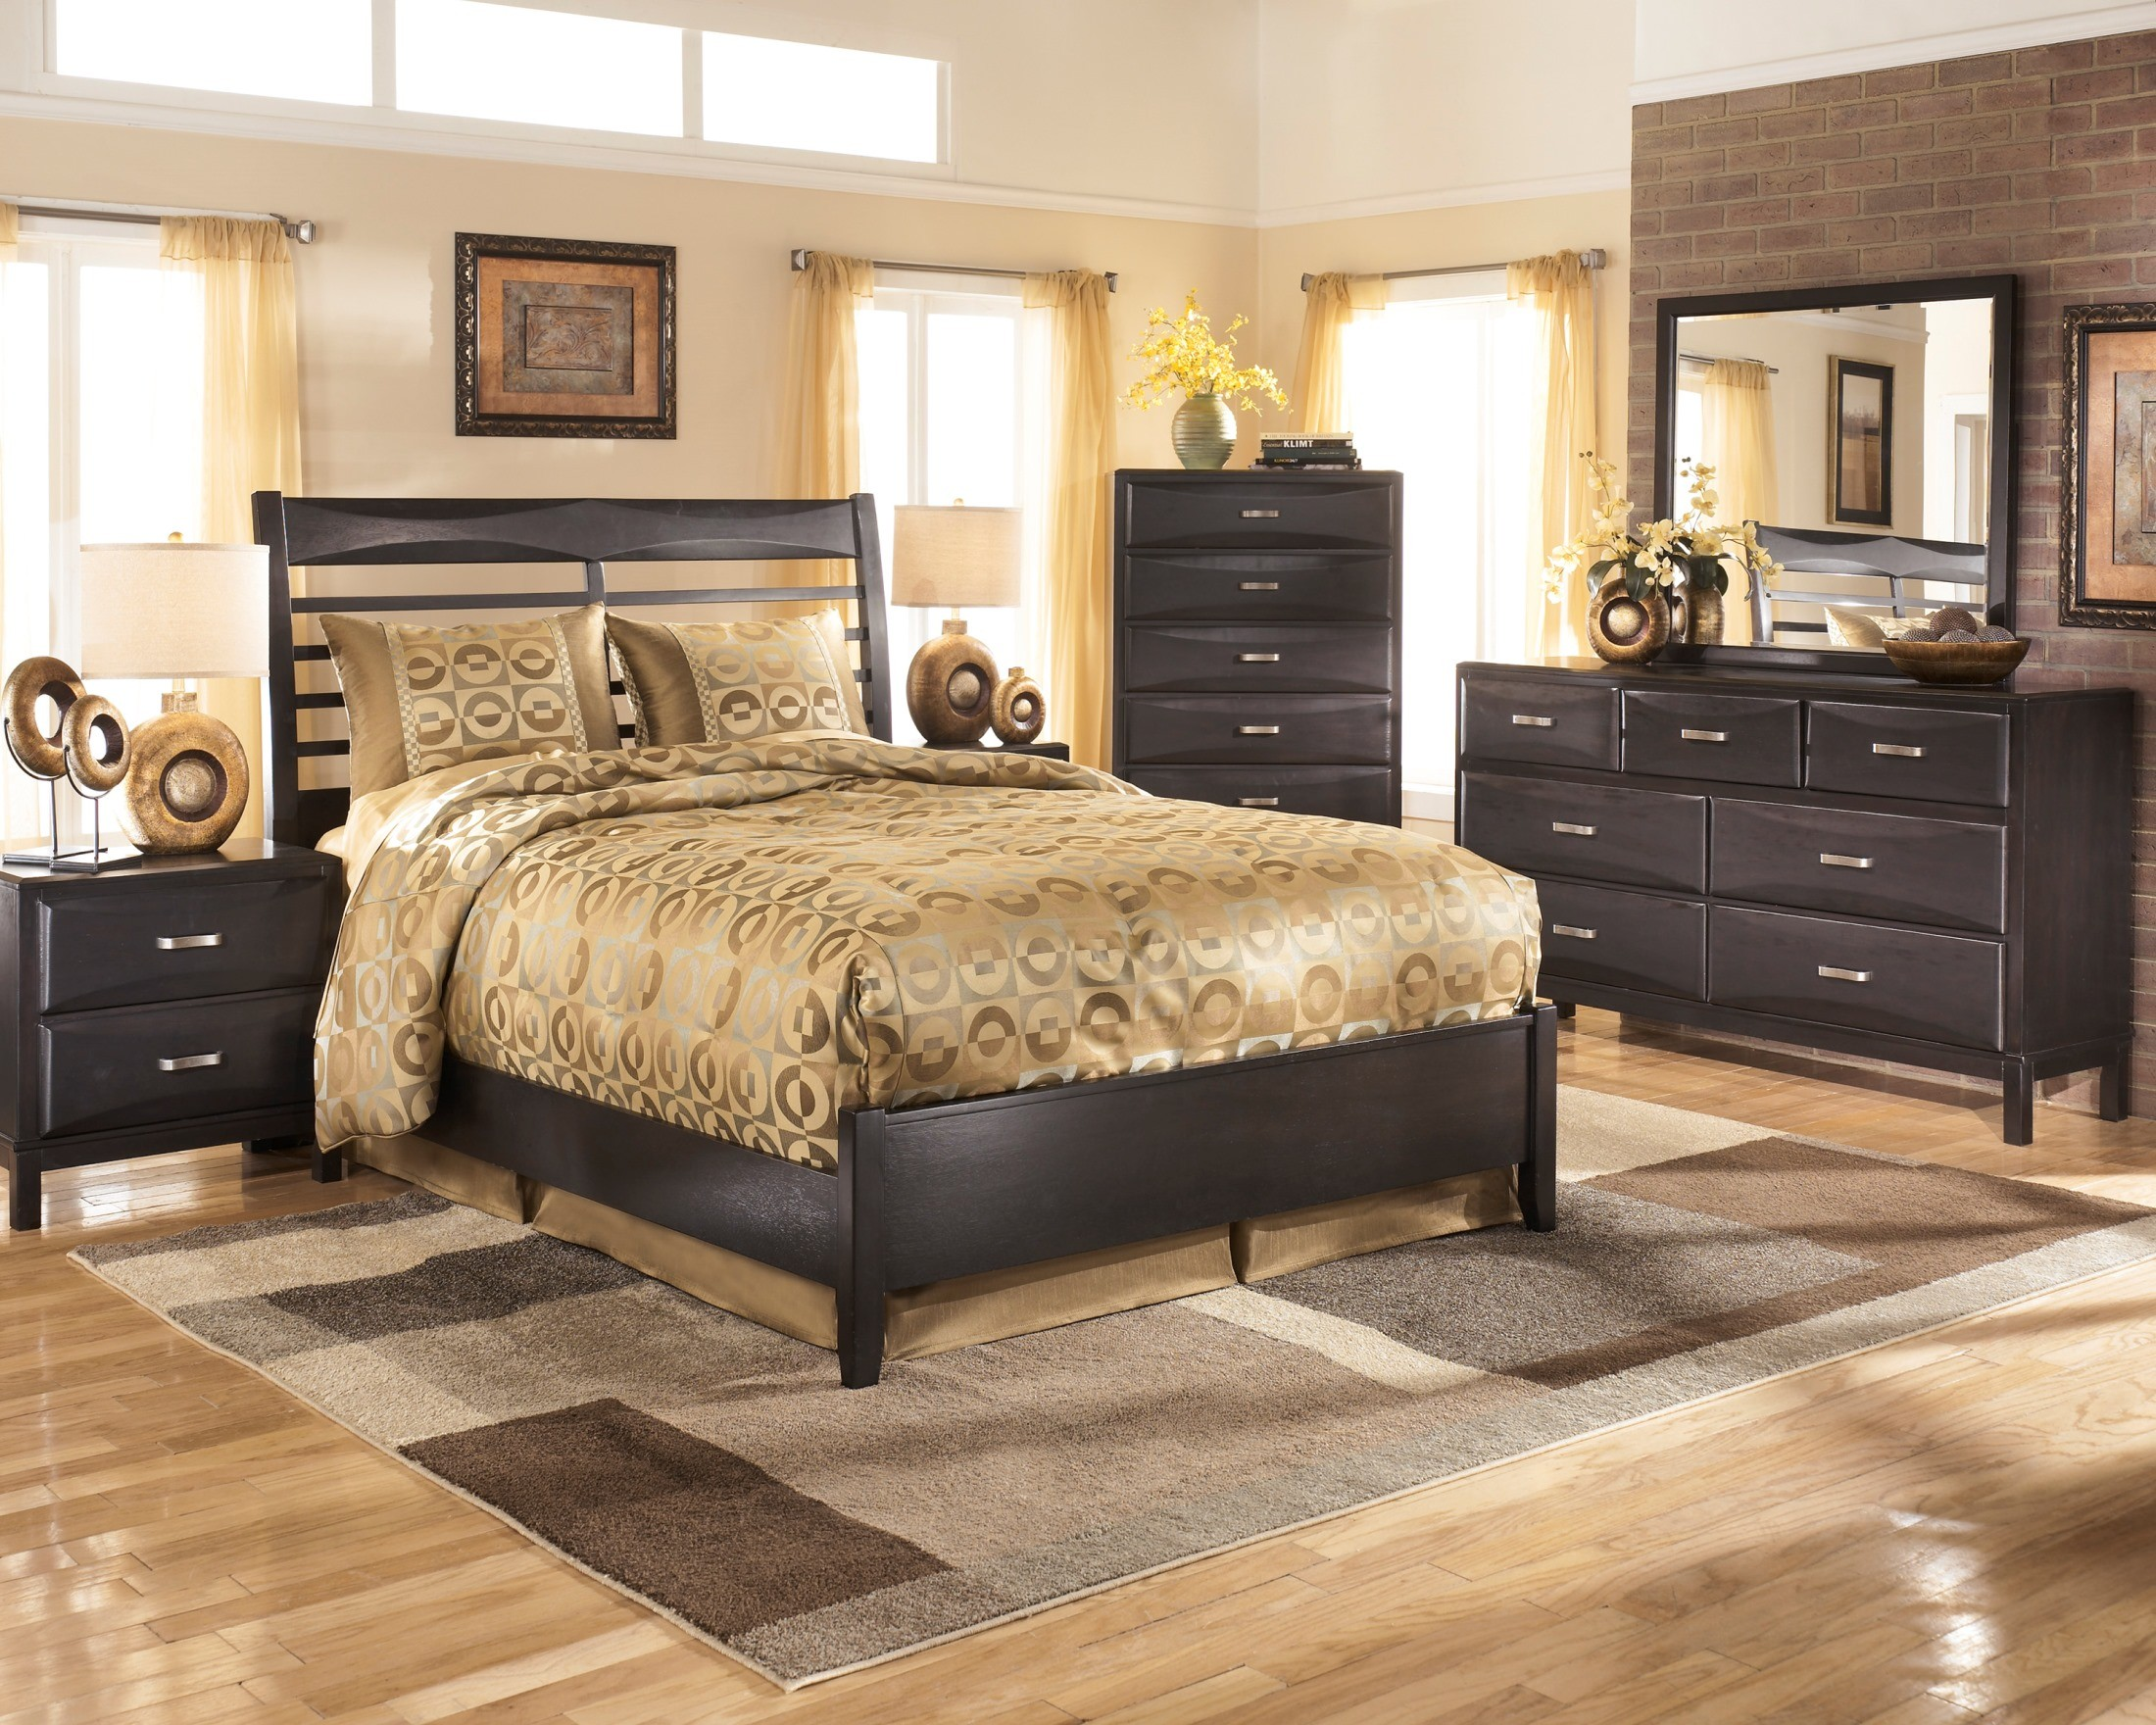 Kira Queen Panel Bed From Ashley B473 54 57 96 Coleman Furniture